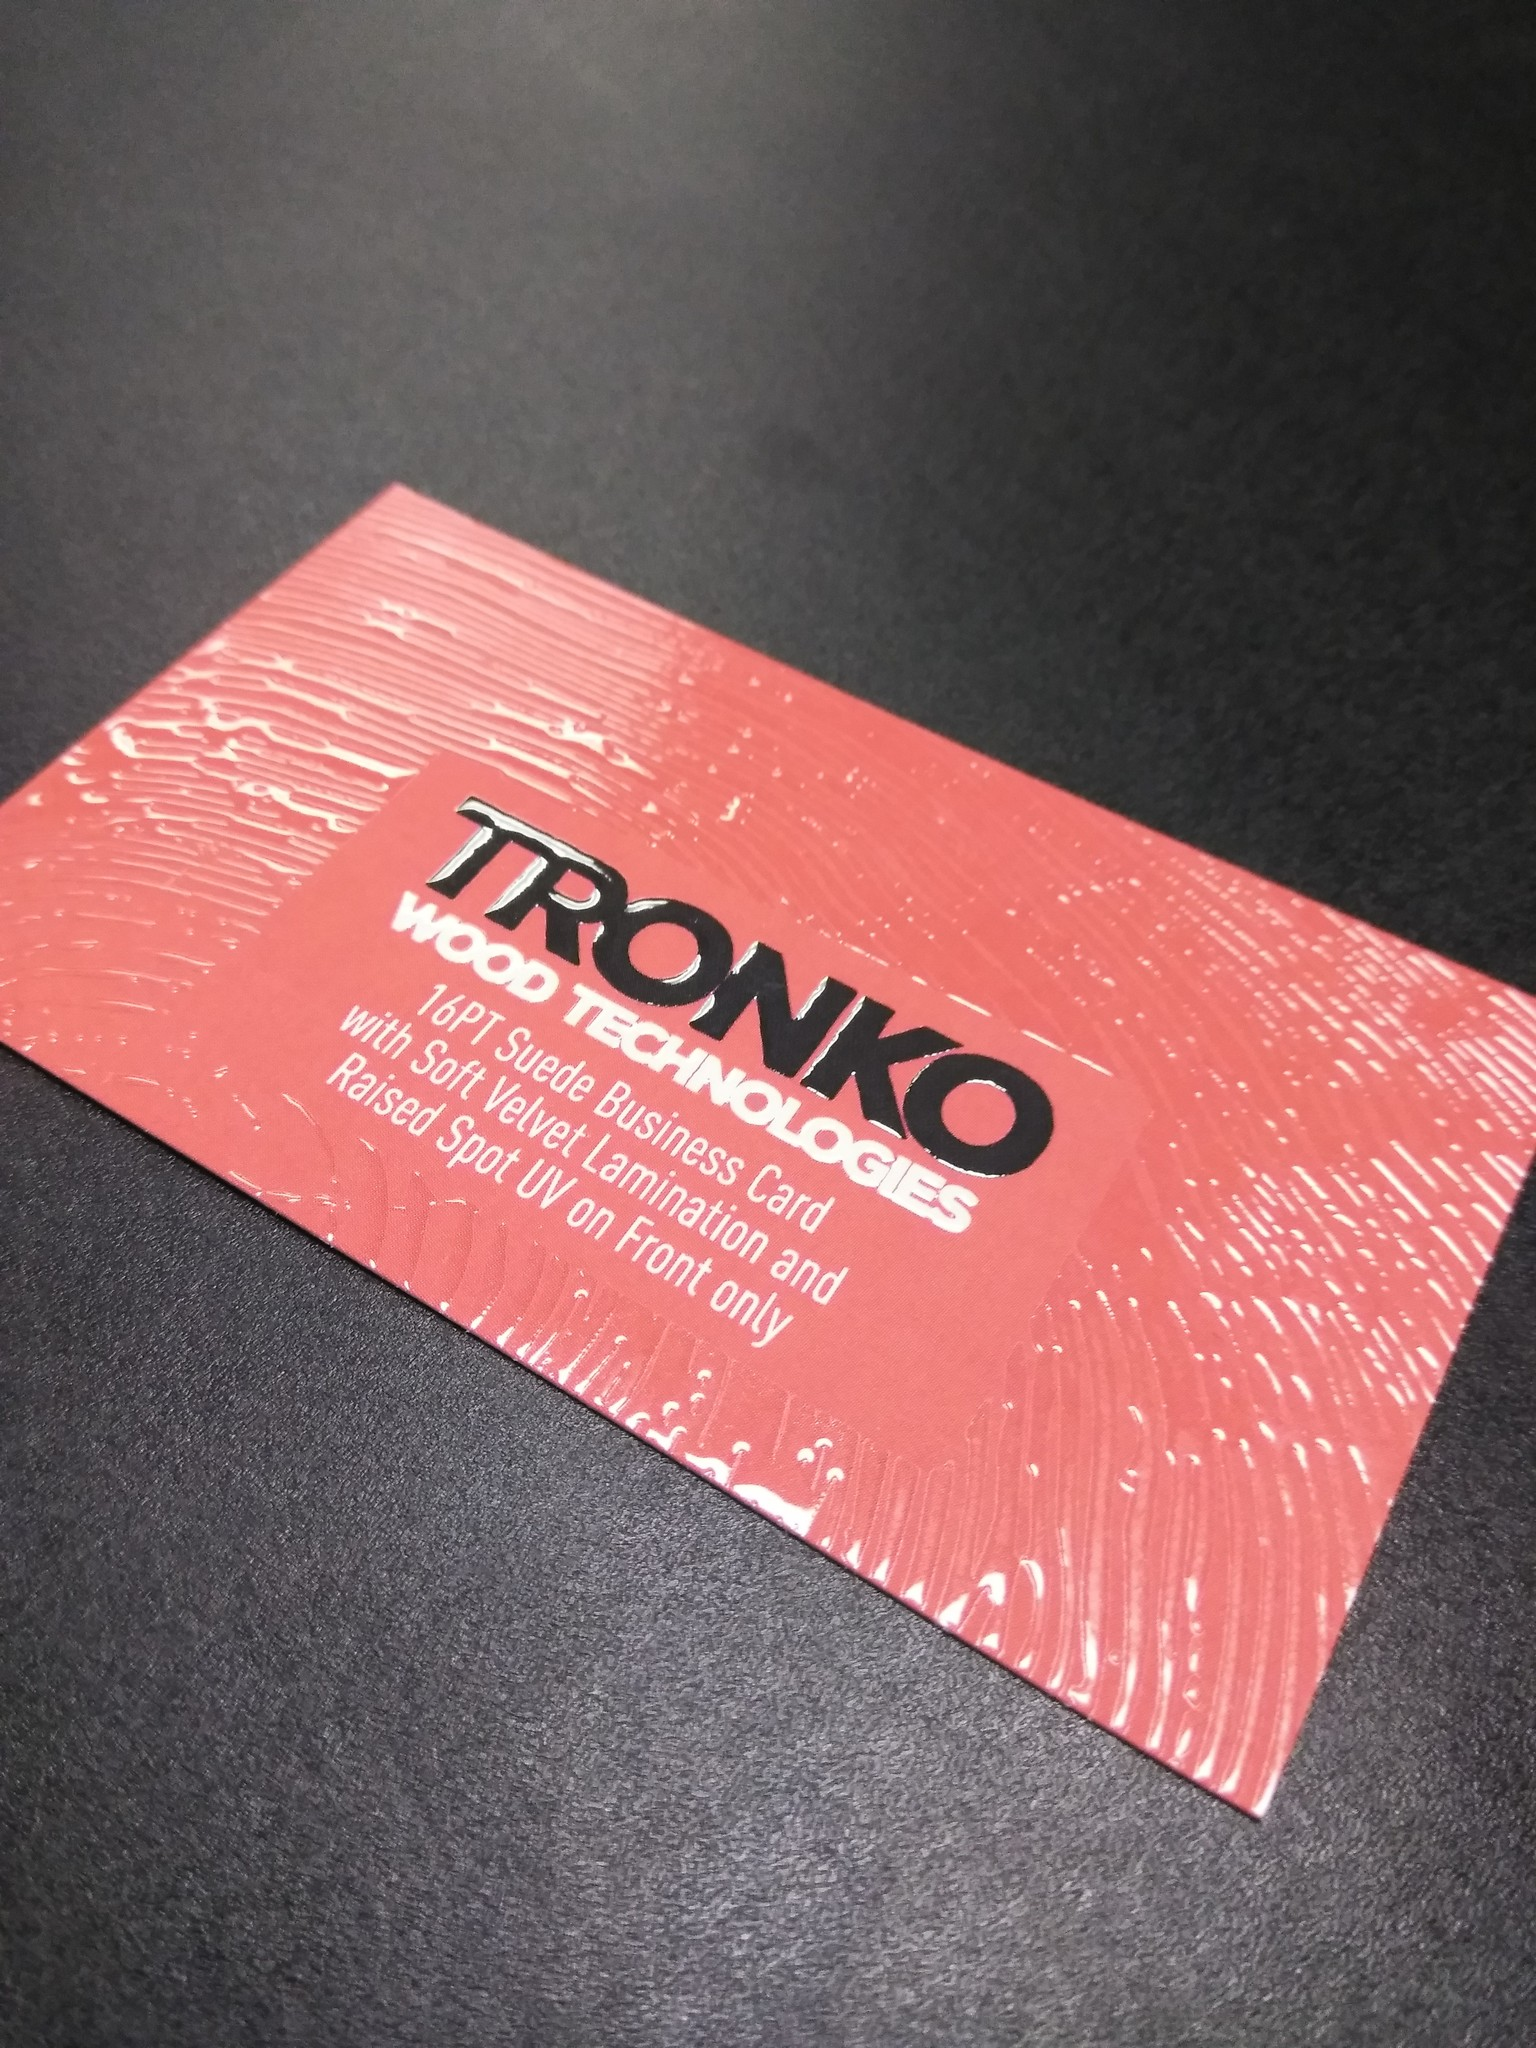 2 X 3 5 16pt Suede Business Cards W